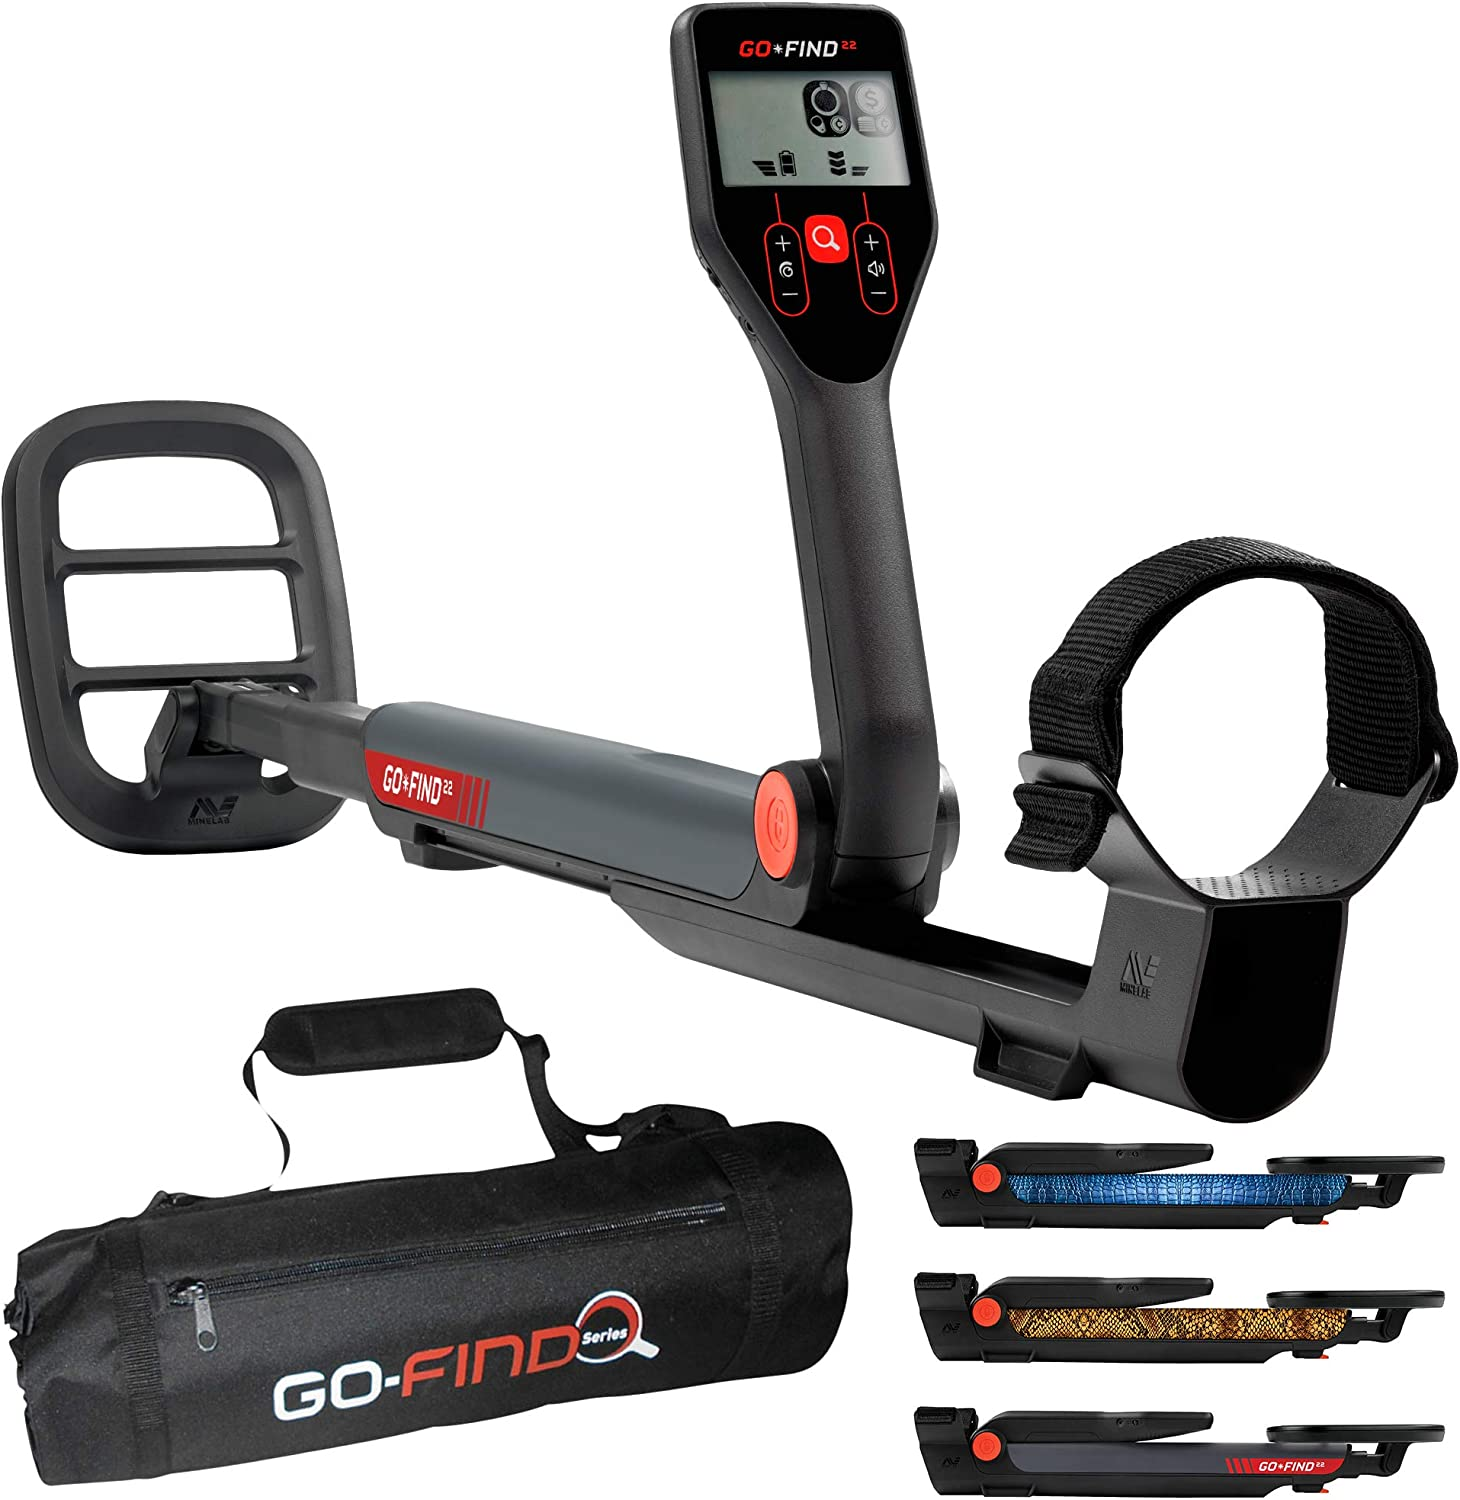 Amazon.com : Minelab GO-FIND 22 Metal Detector with GO-FIND ...